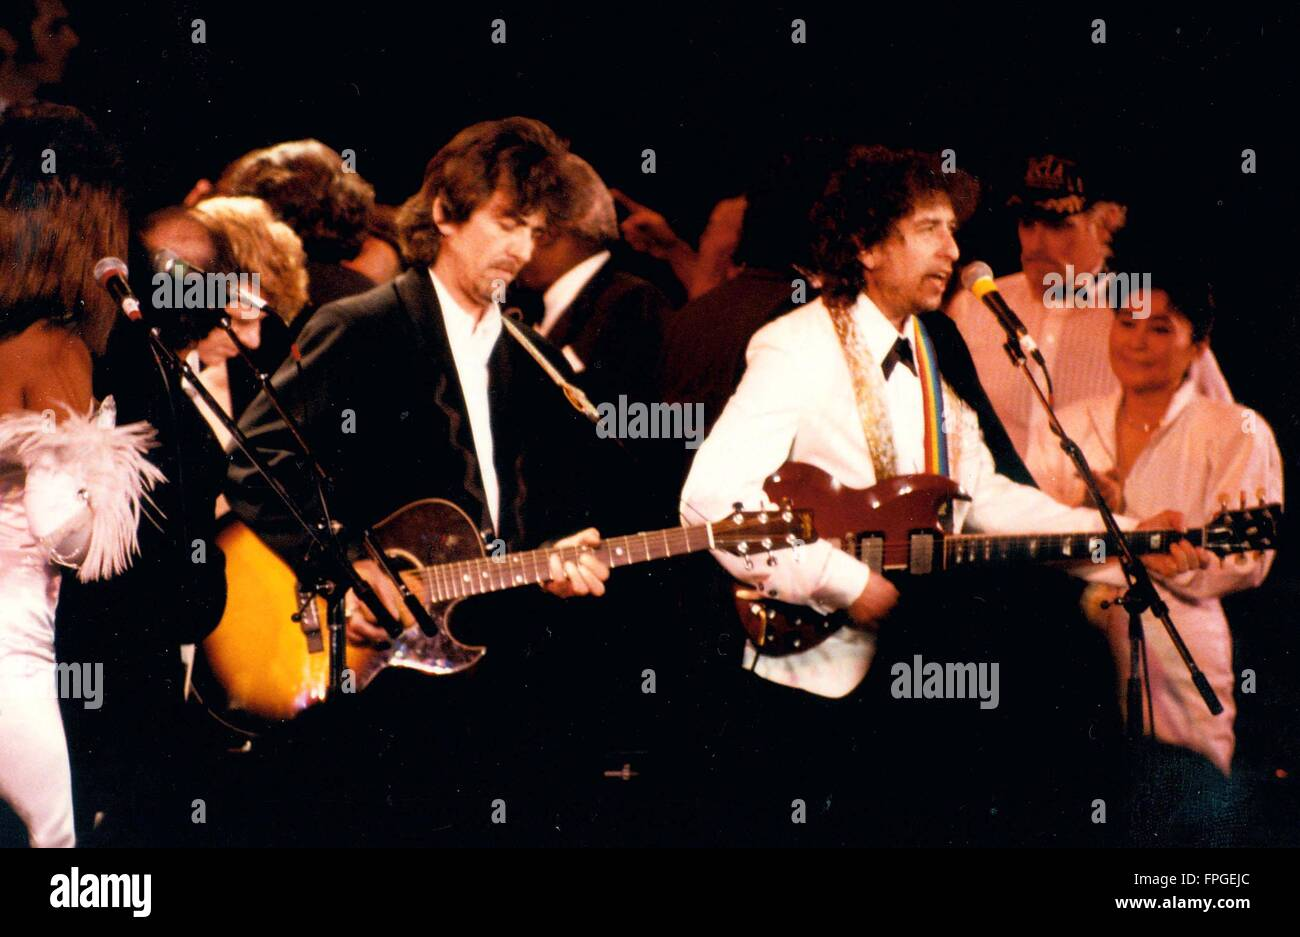 Beatles George Harrison And Bob Dylan Yoko Ono THE ROCK ROLL HALL OF FAME CELEBRATION WALDORF ASTORIA NEW YORK CITY 01 20 1988 Photo Michael Brito